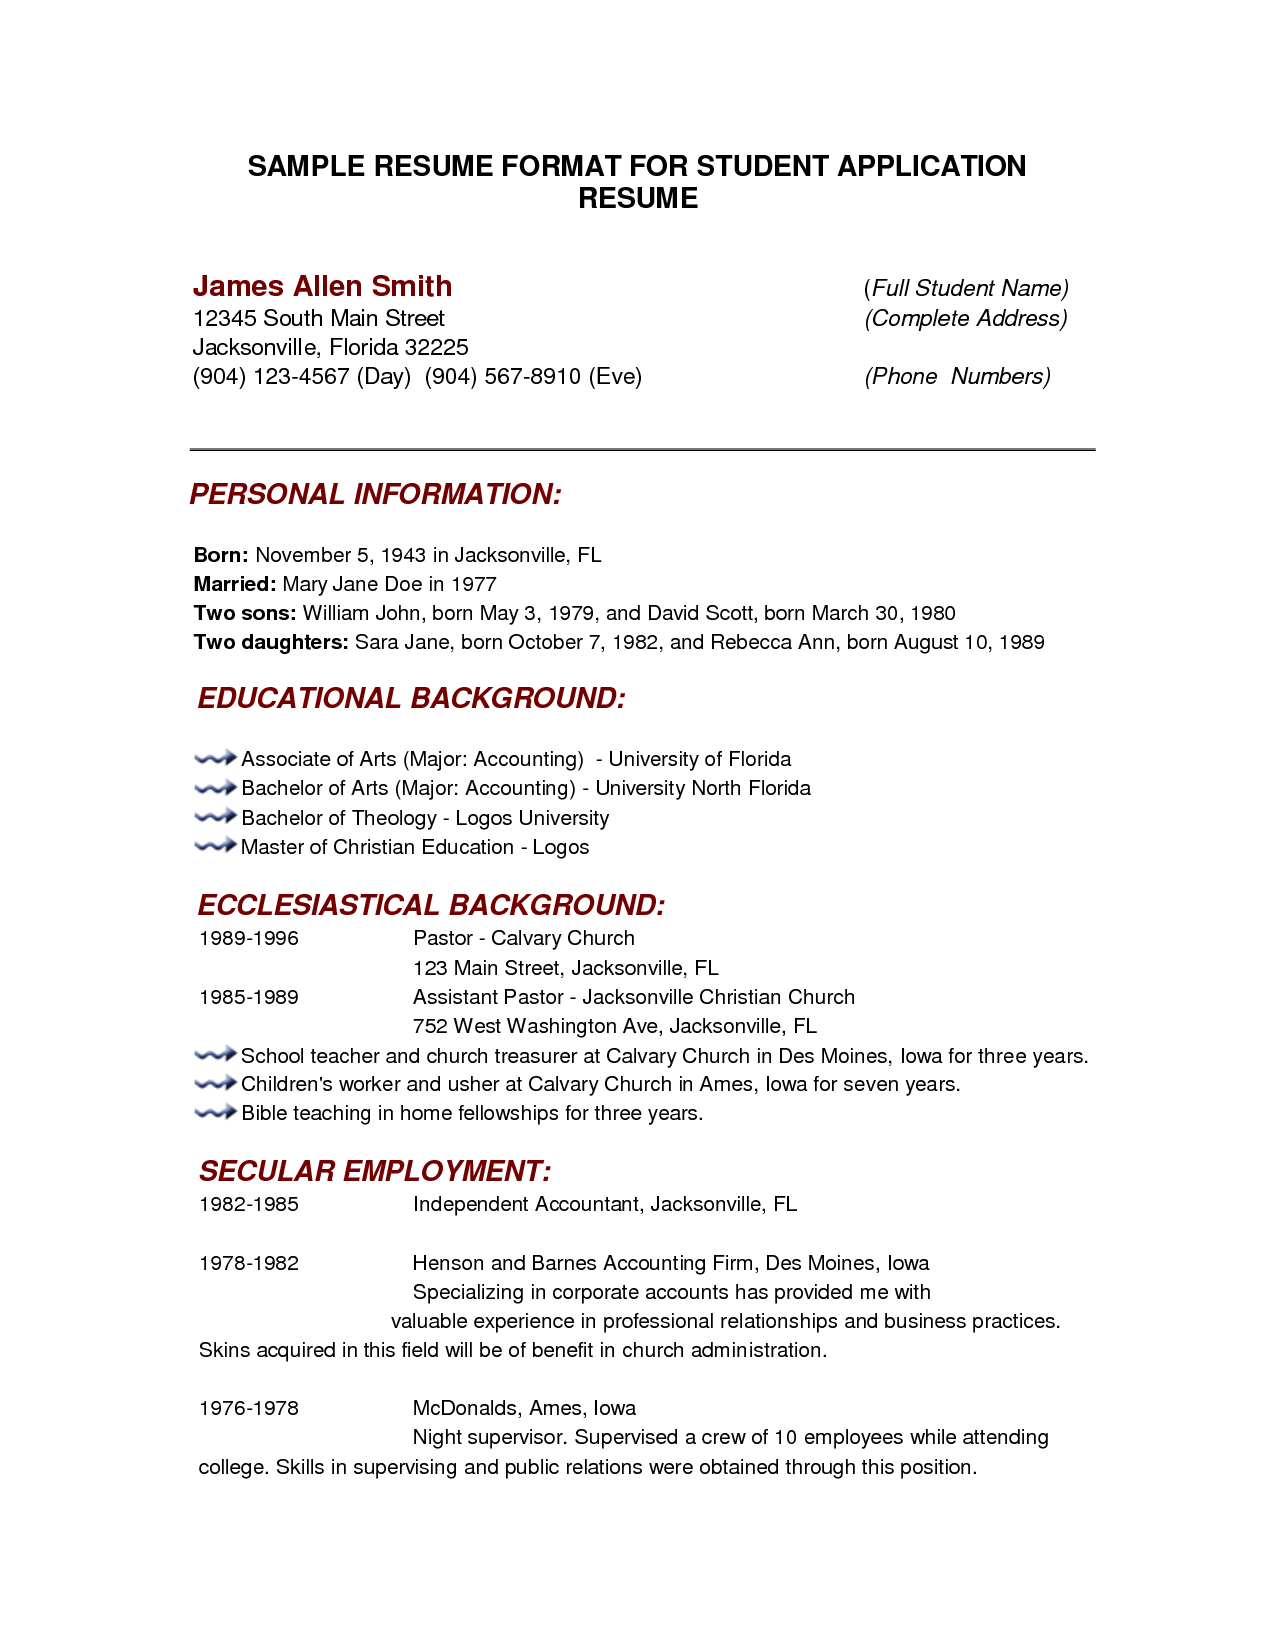 Full Block Resume Format Style For Business Letter Examples Basic Template  Free Samples  Cover Letter For Resume Format